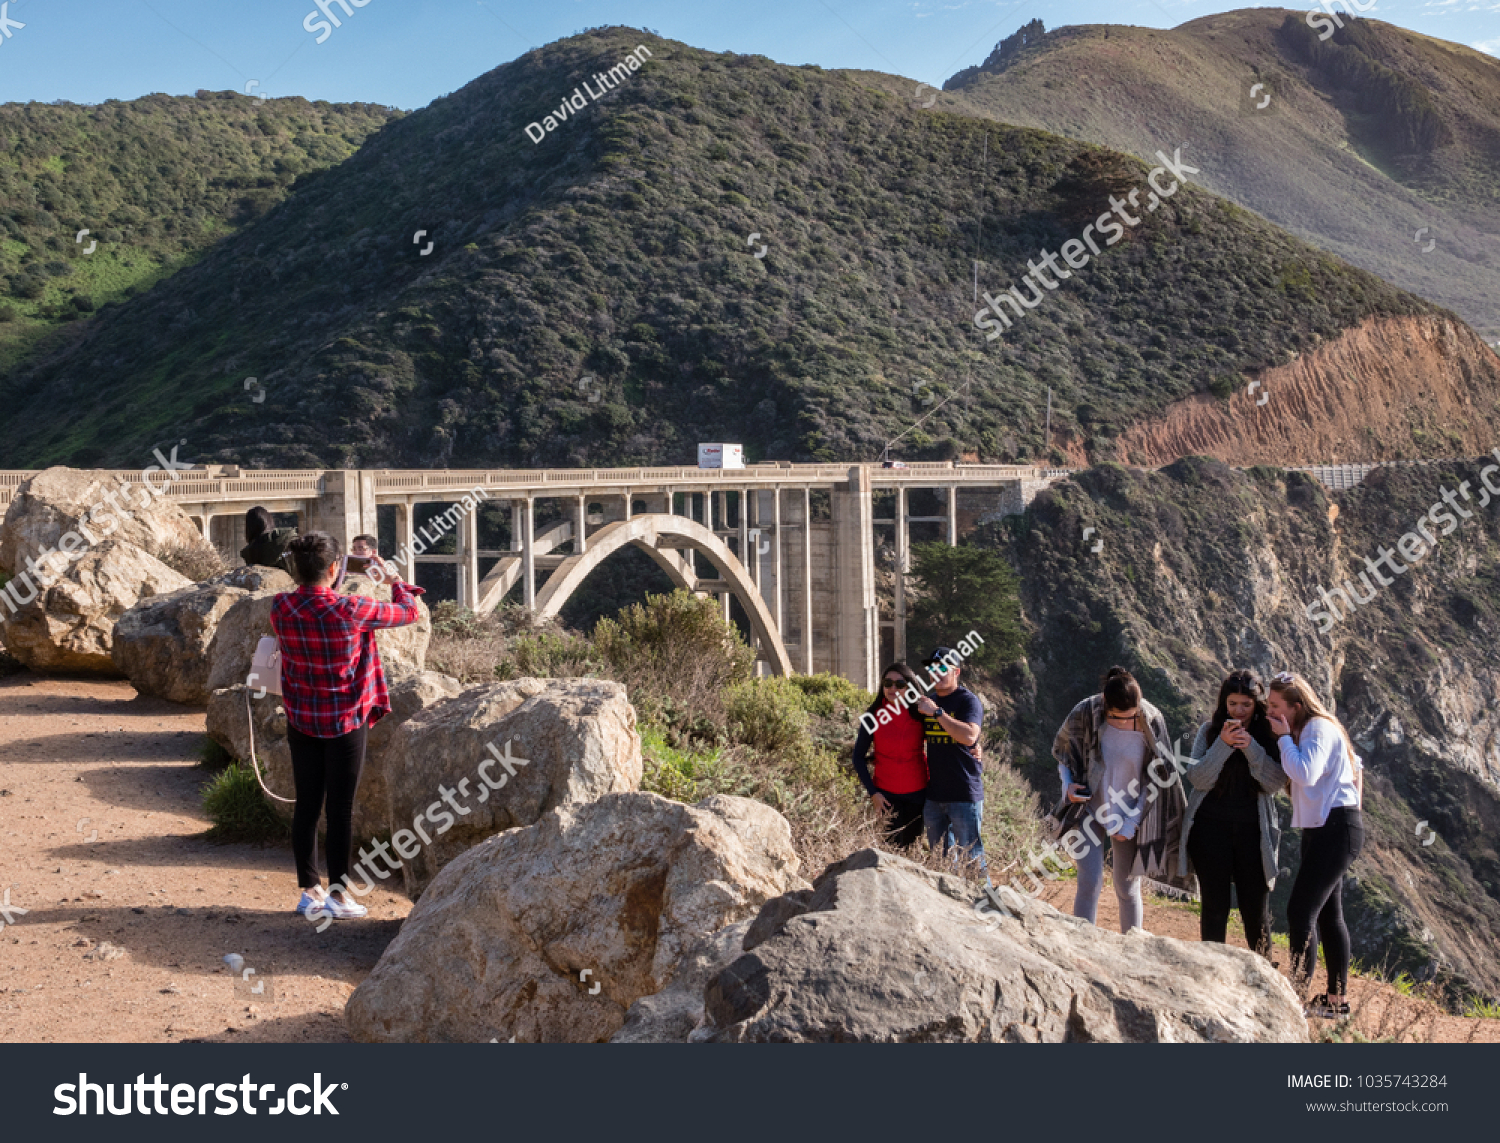 Big Sur, California - January 31, 2018: Tourists take photos and check selfies at scenic viewpoint next to Bixby Bridge, along the Pacific Coast of the Monterey Bay on Highway 1.  California travel.